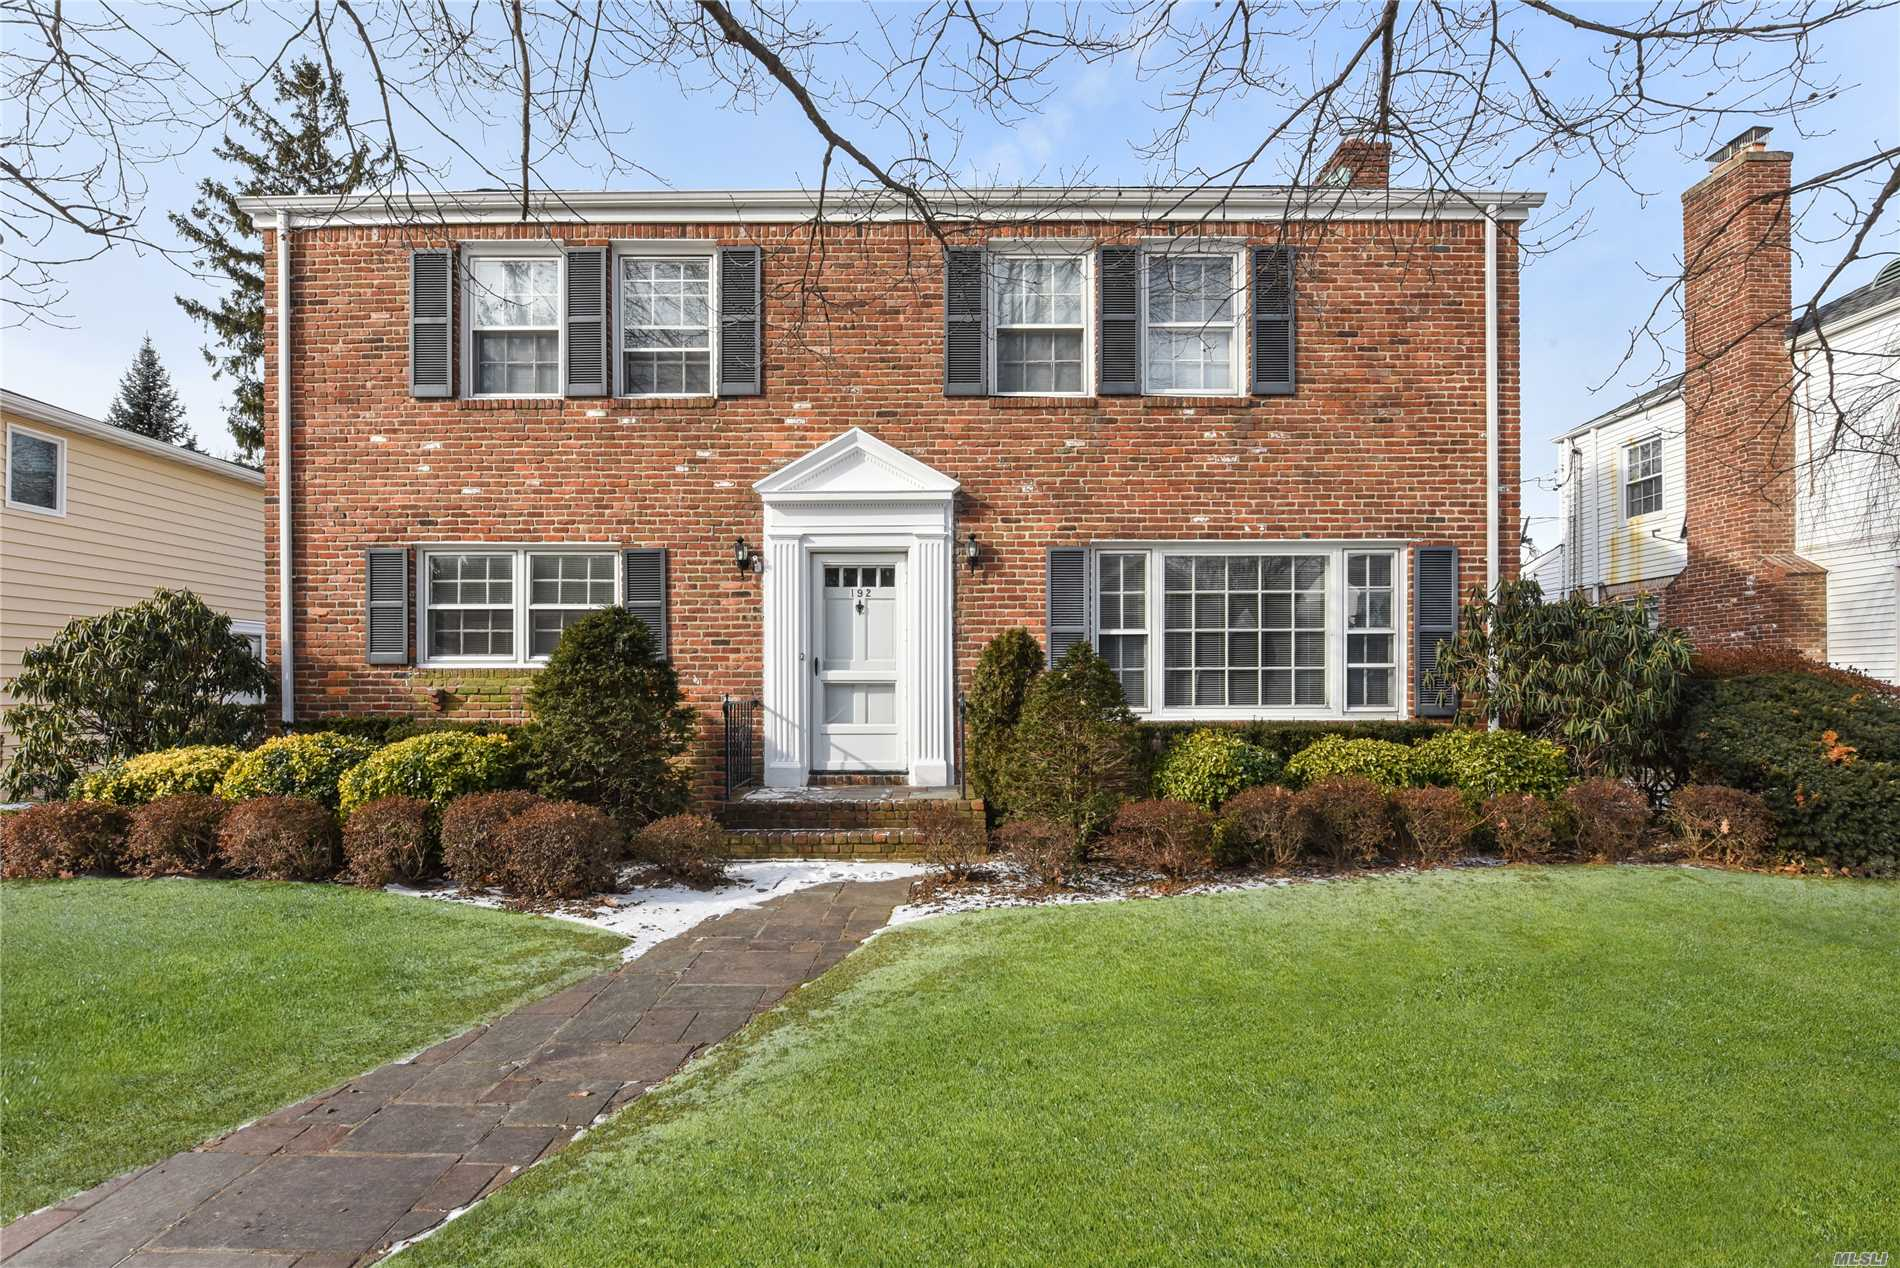 Location, Location, Location! Make This Home Your Own! Brick Center Hall Colonial In Prime Estates Location. Spacious Rooms Throughout. Near 2 Railroad Lines, Schools And Park.